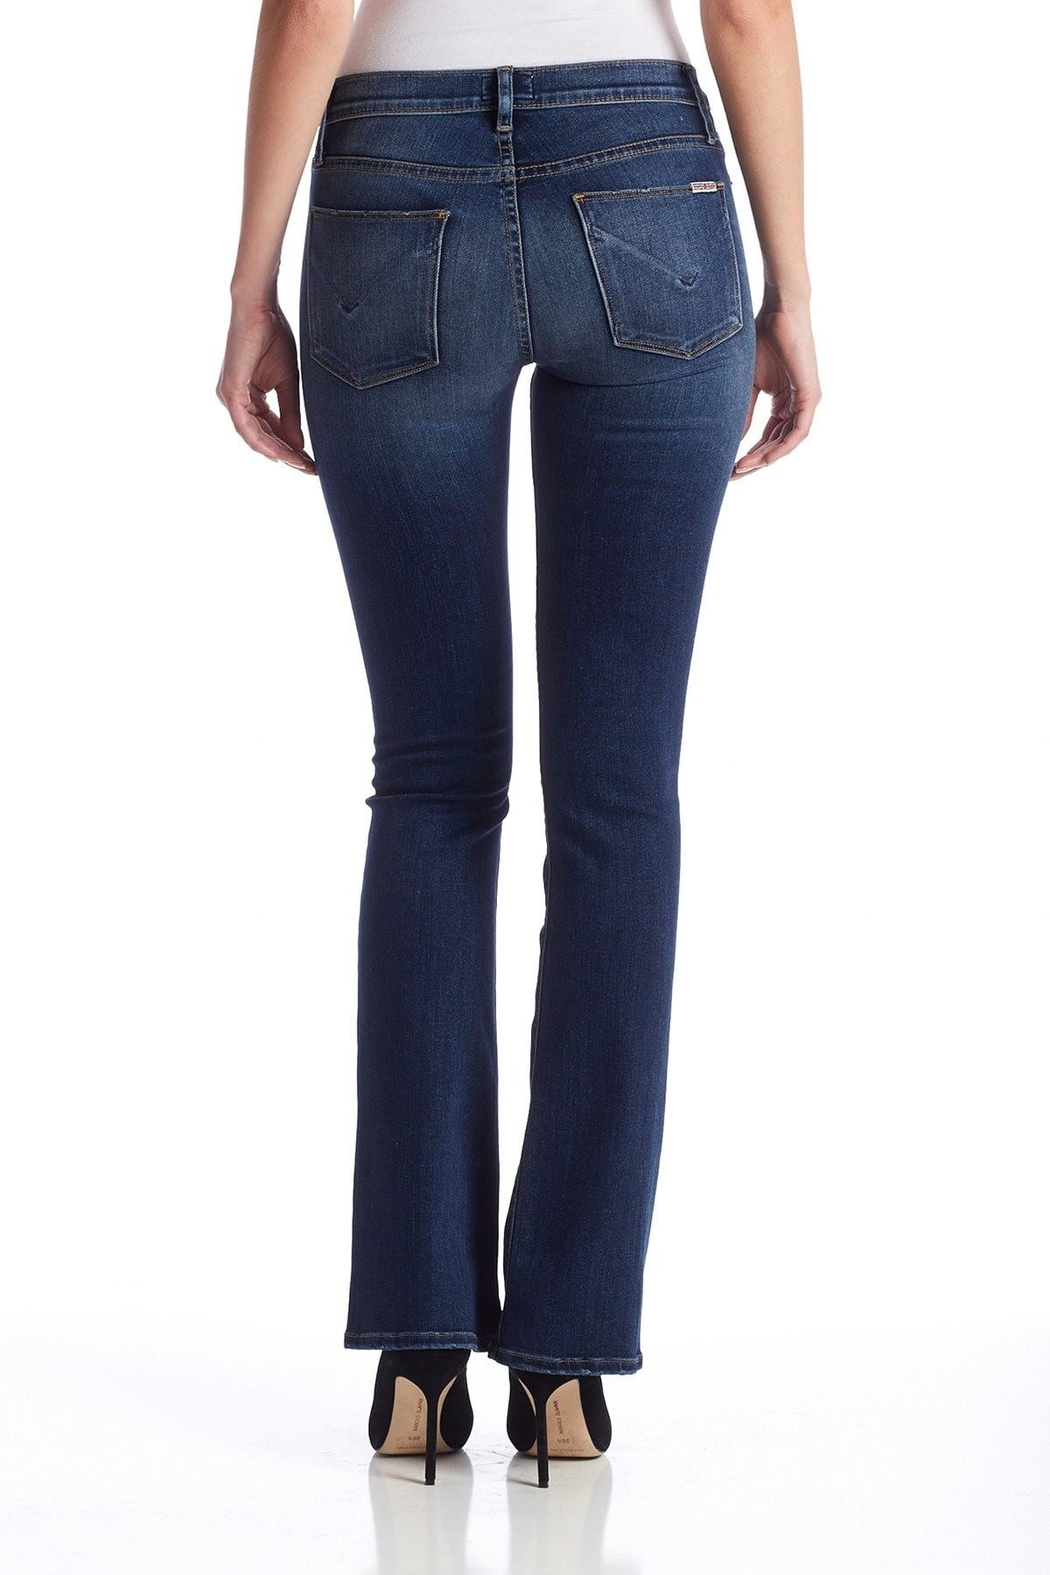 Hudson Jeans Love Midrise-Bootcut Revolt - Front Cropped Image